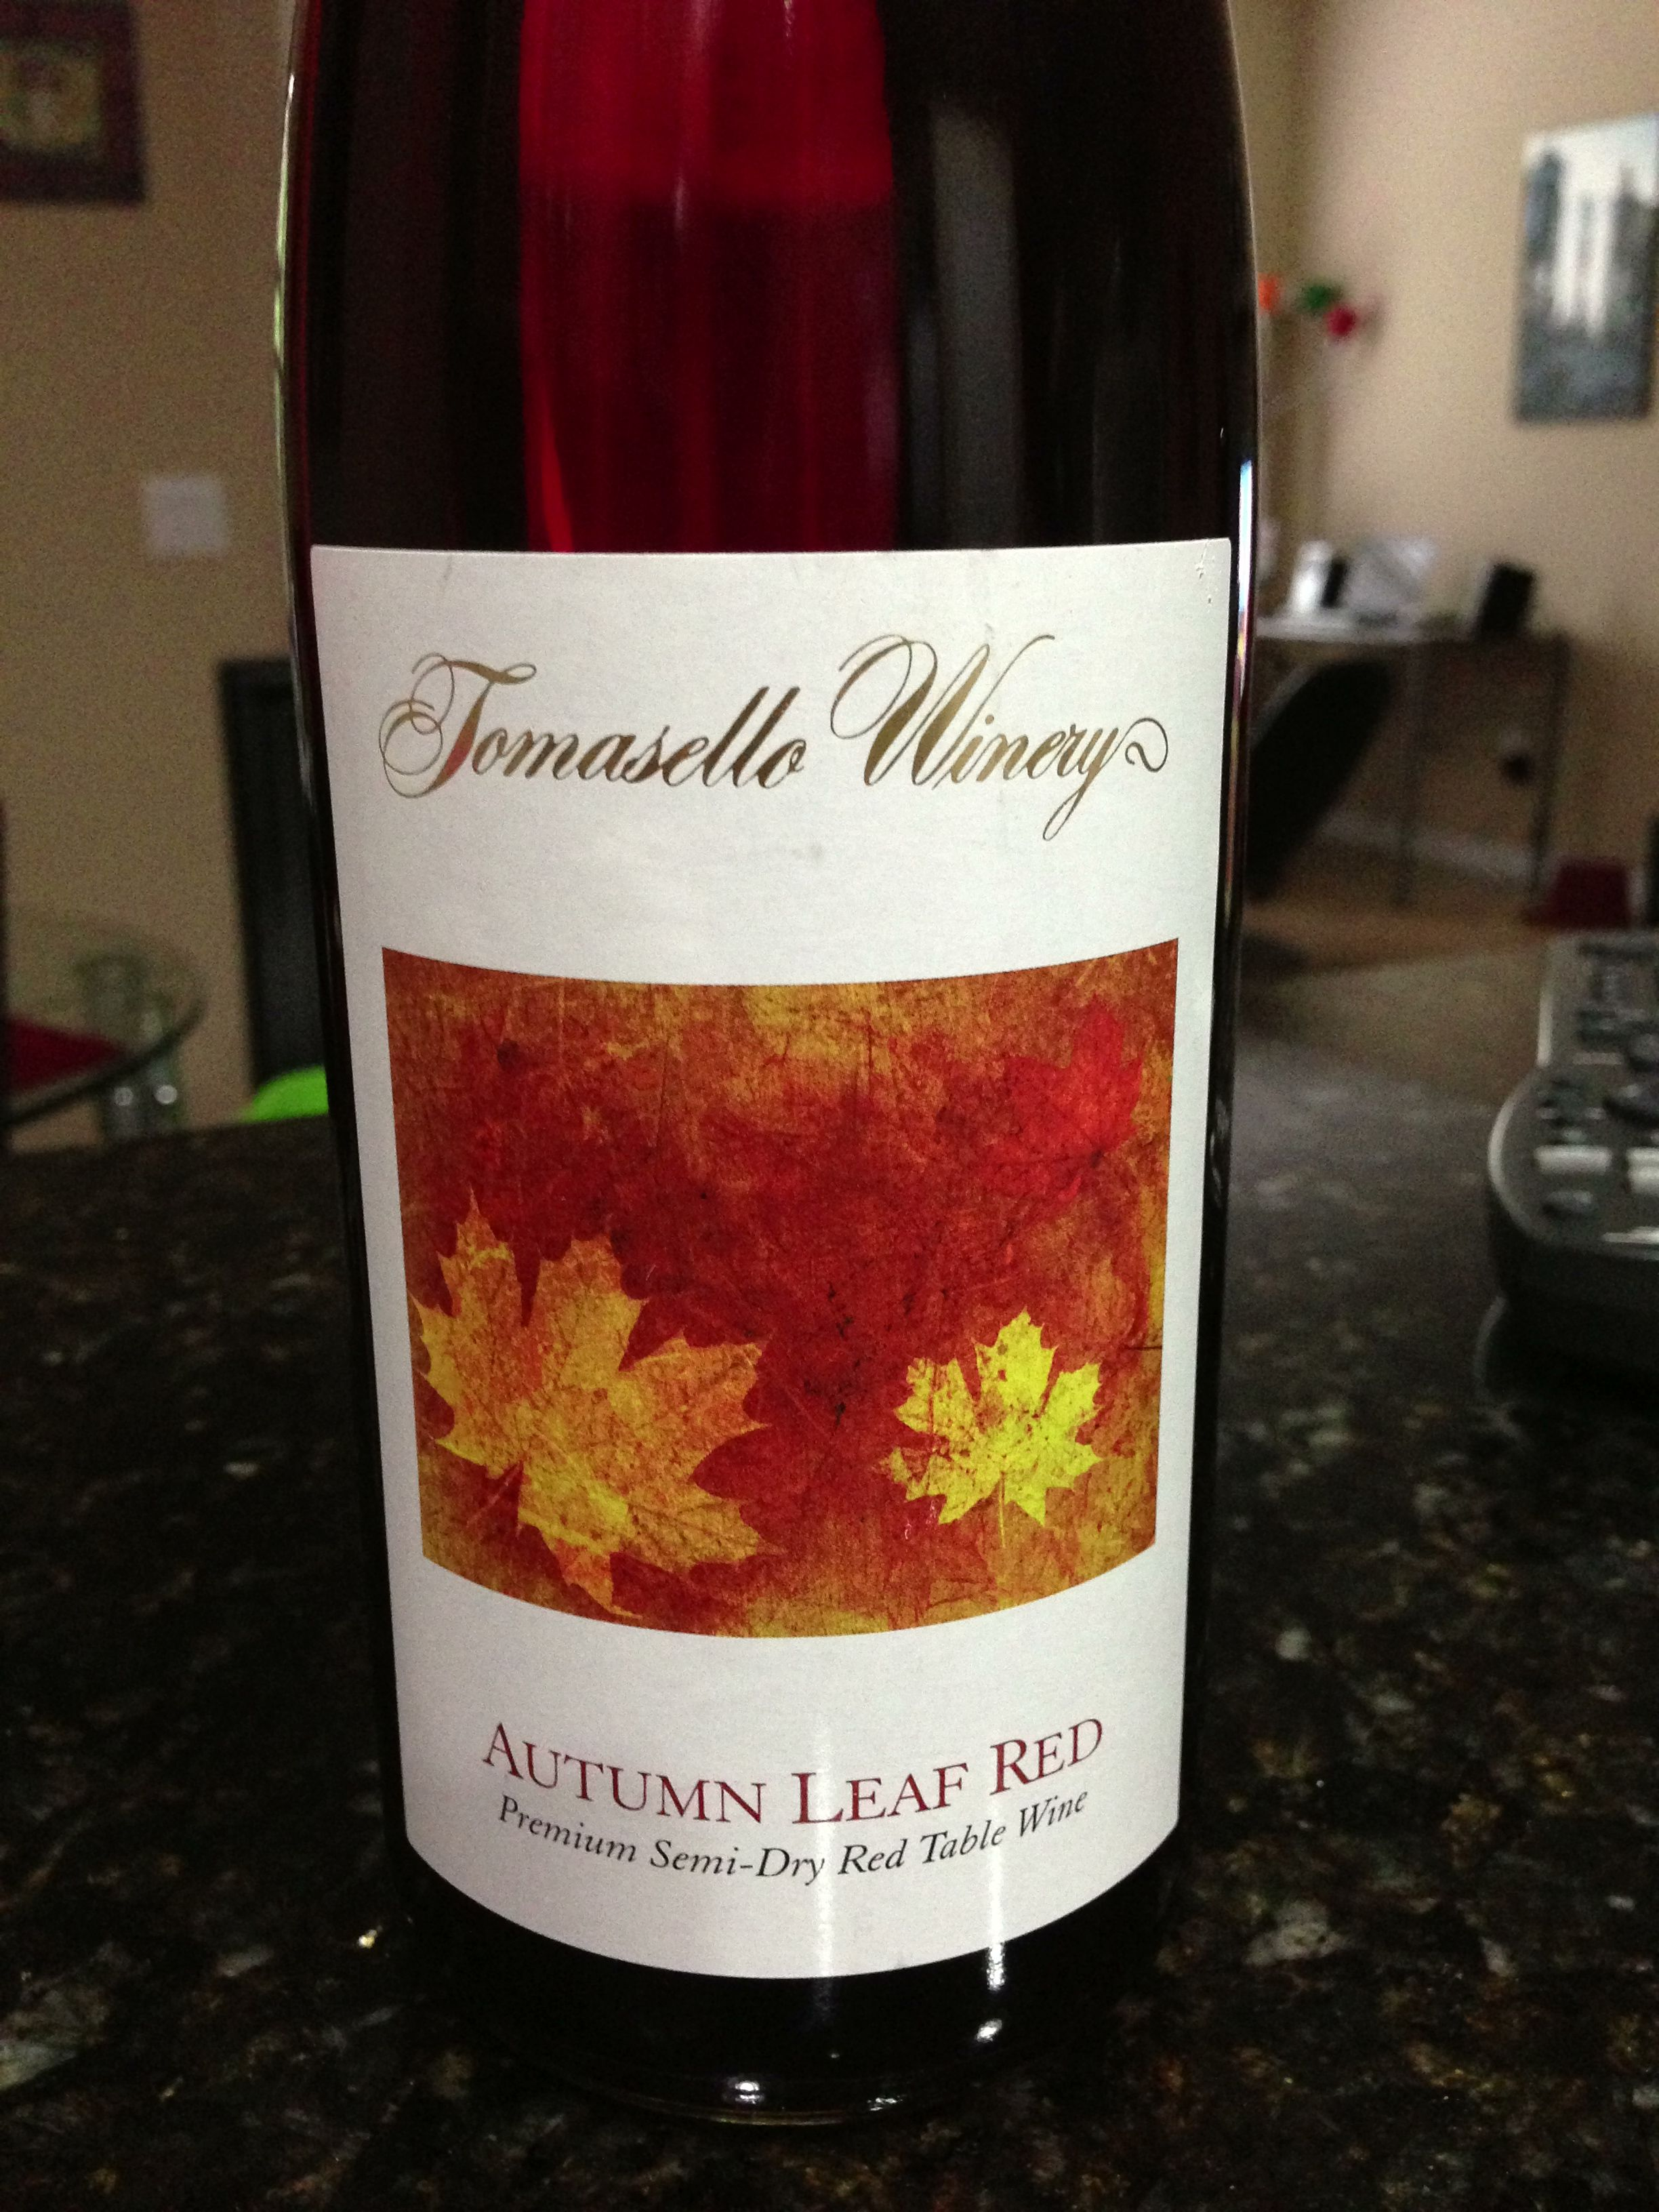 From Tomasello Winery Autumn Leaf Red A Premium Semi Dry Red Table Wine Summertime Drinks Winery Red Table